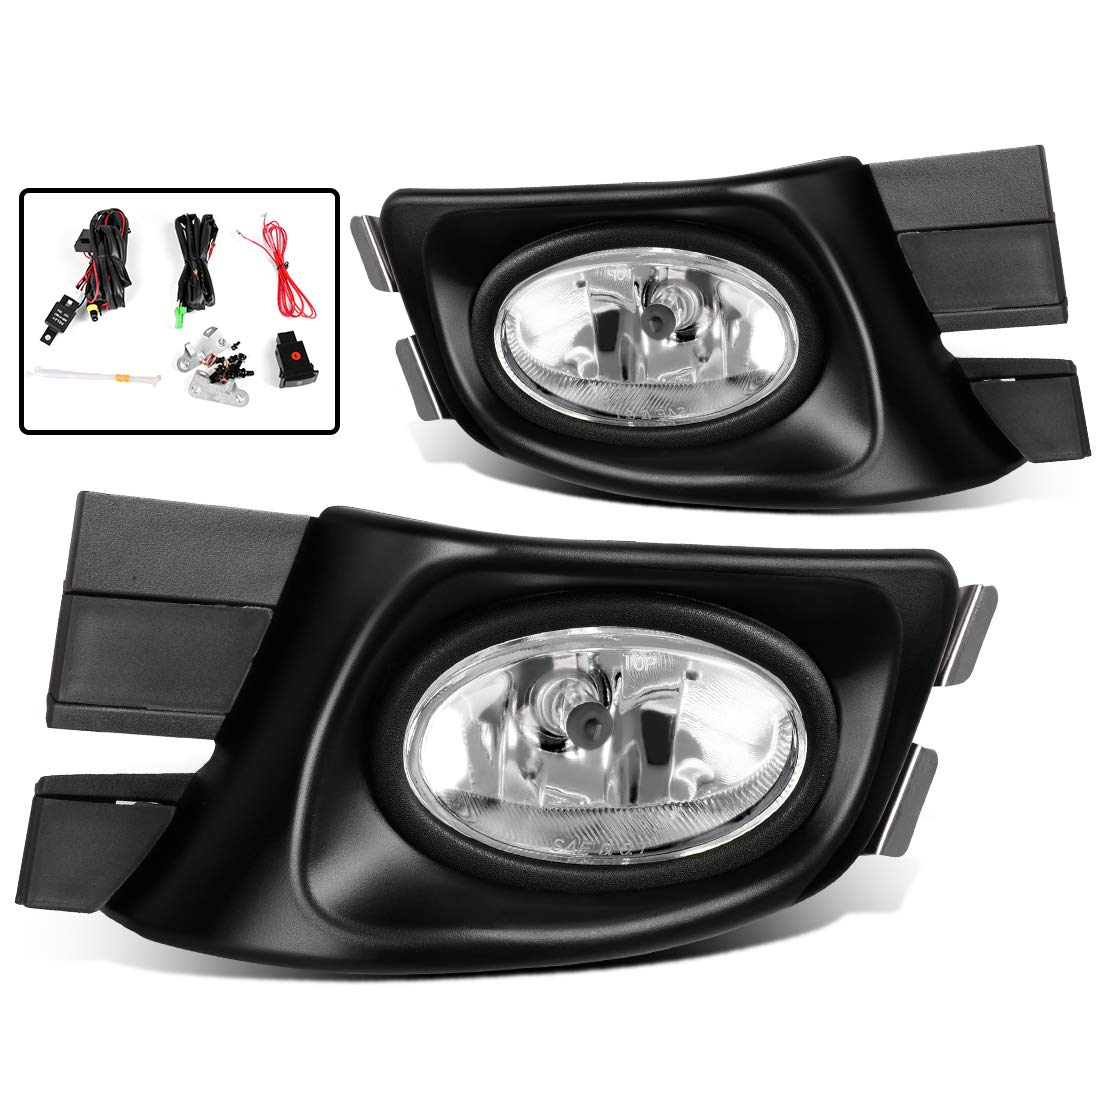 Fog Lights For Honda Accord 2003 2004 2005 Real Glass Clear Lens Wire Harness With Bulbs Wiring